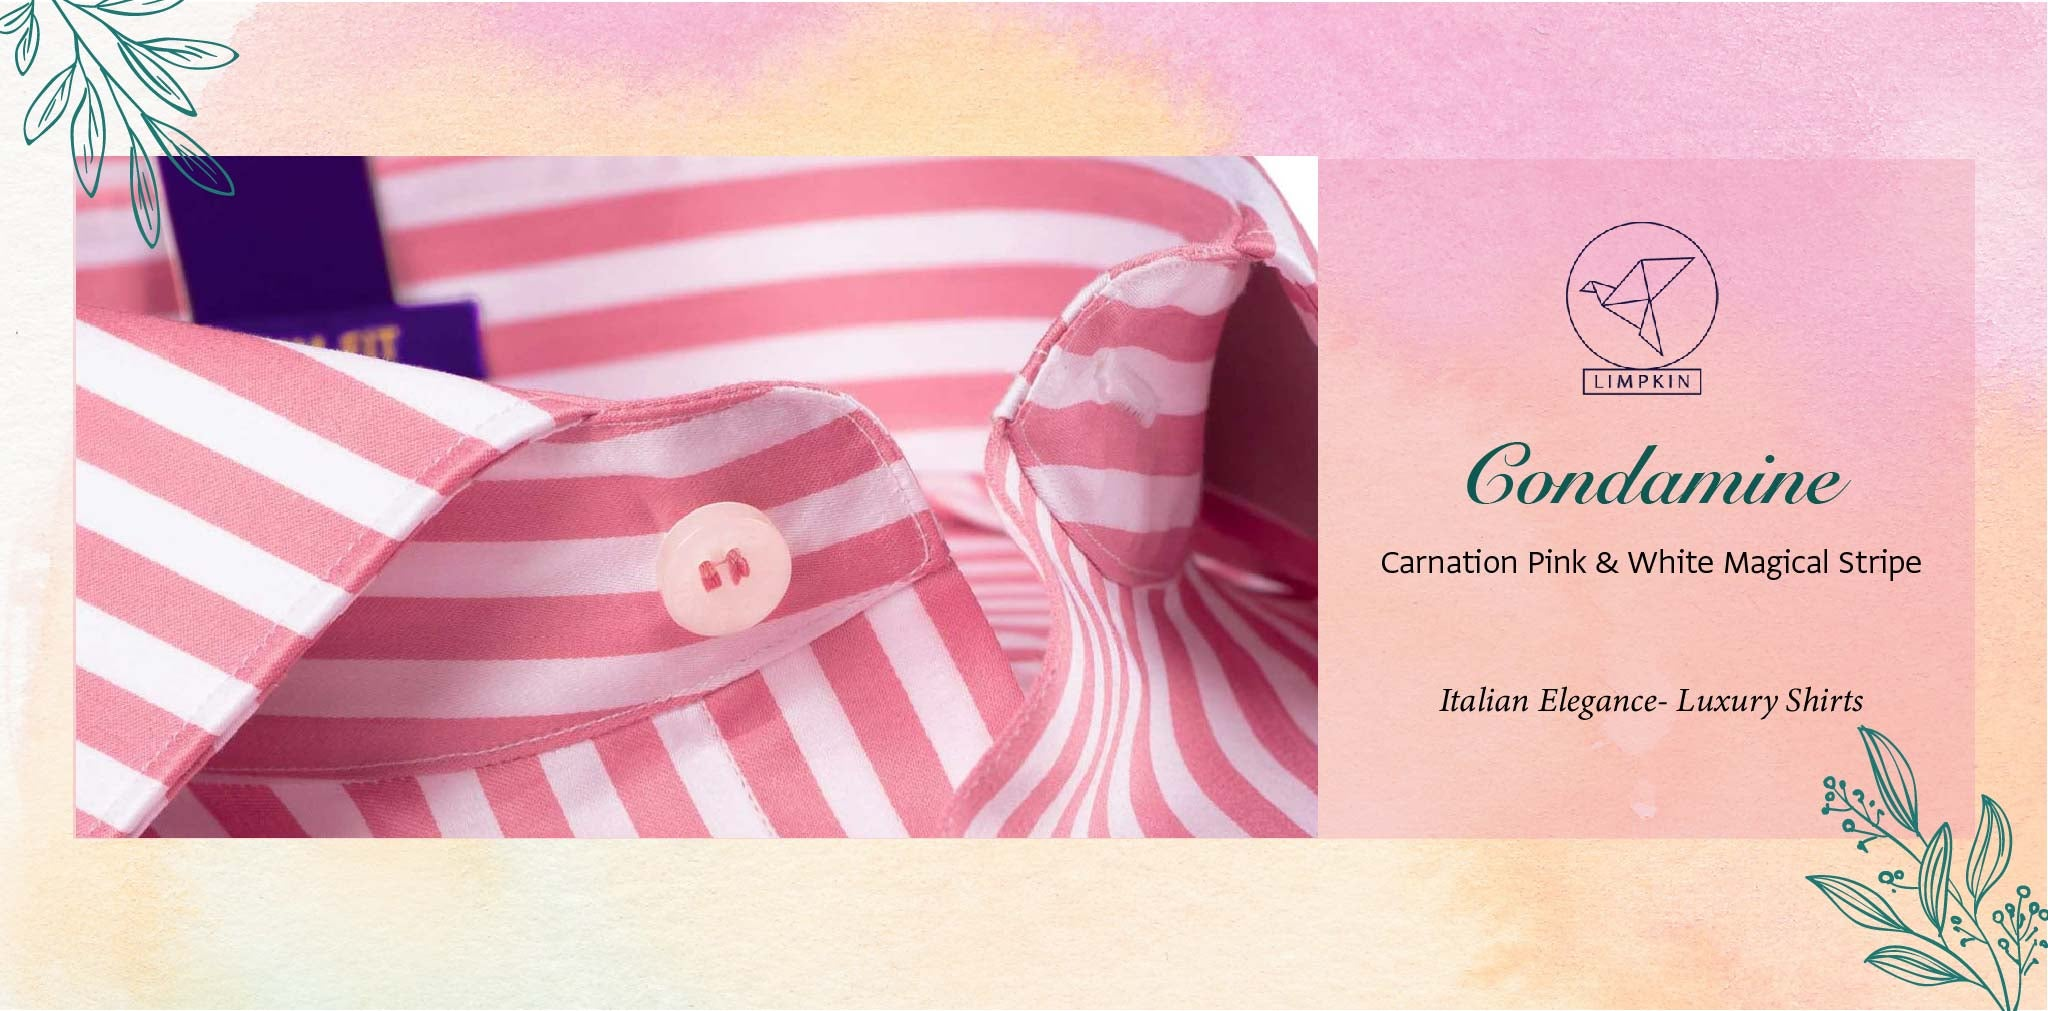 Condamine- Carnation Pink & White Magical Stripe- 2 Ply Pure Egyptian Giza Cotton- Delivery from 11th Nov - Banner